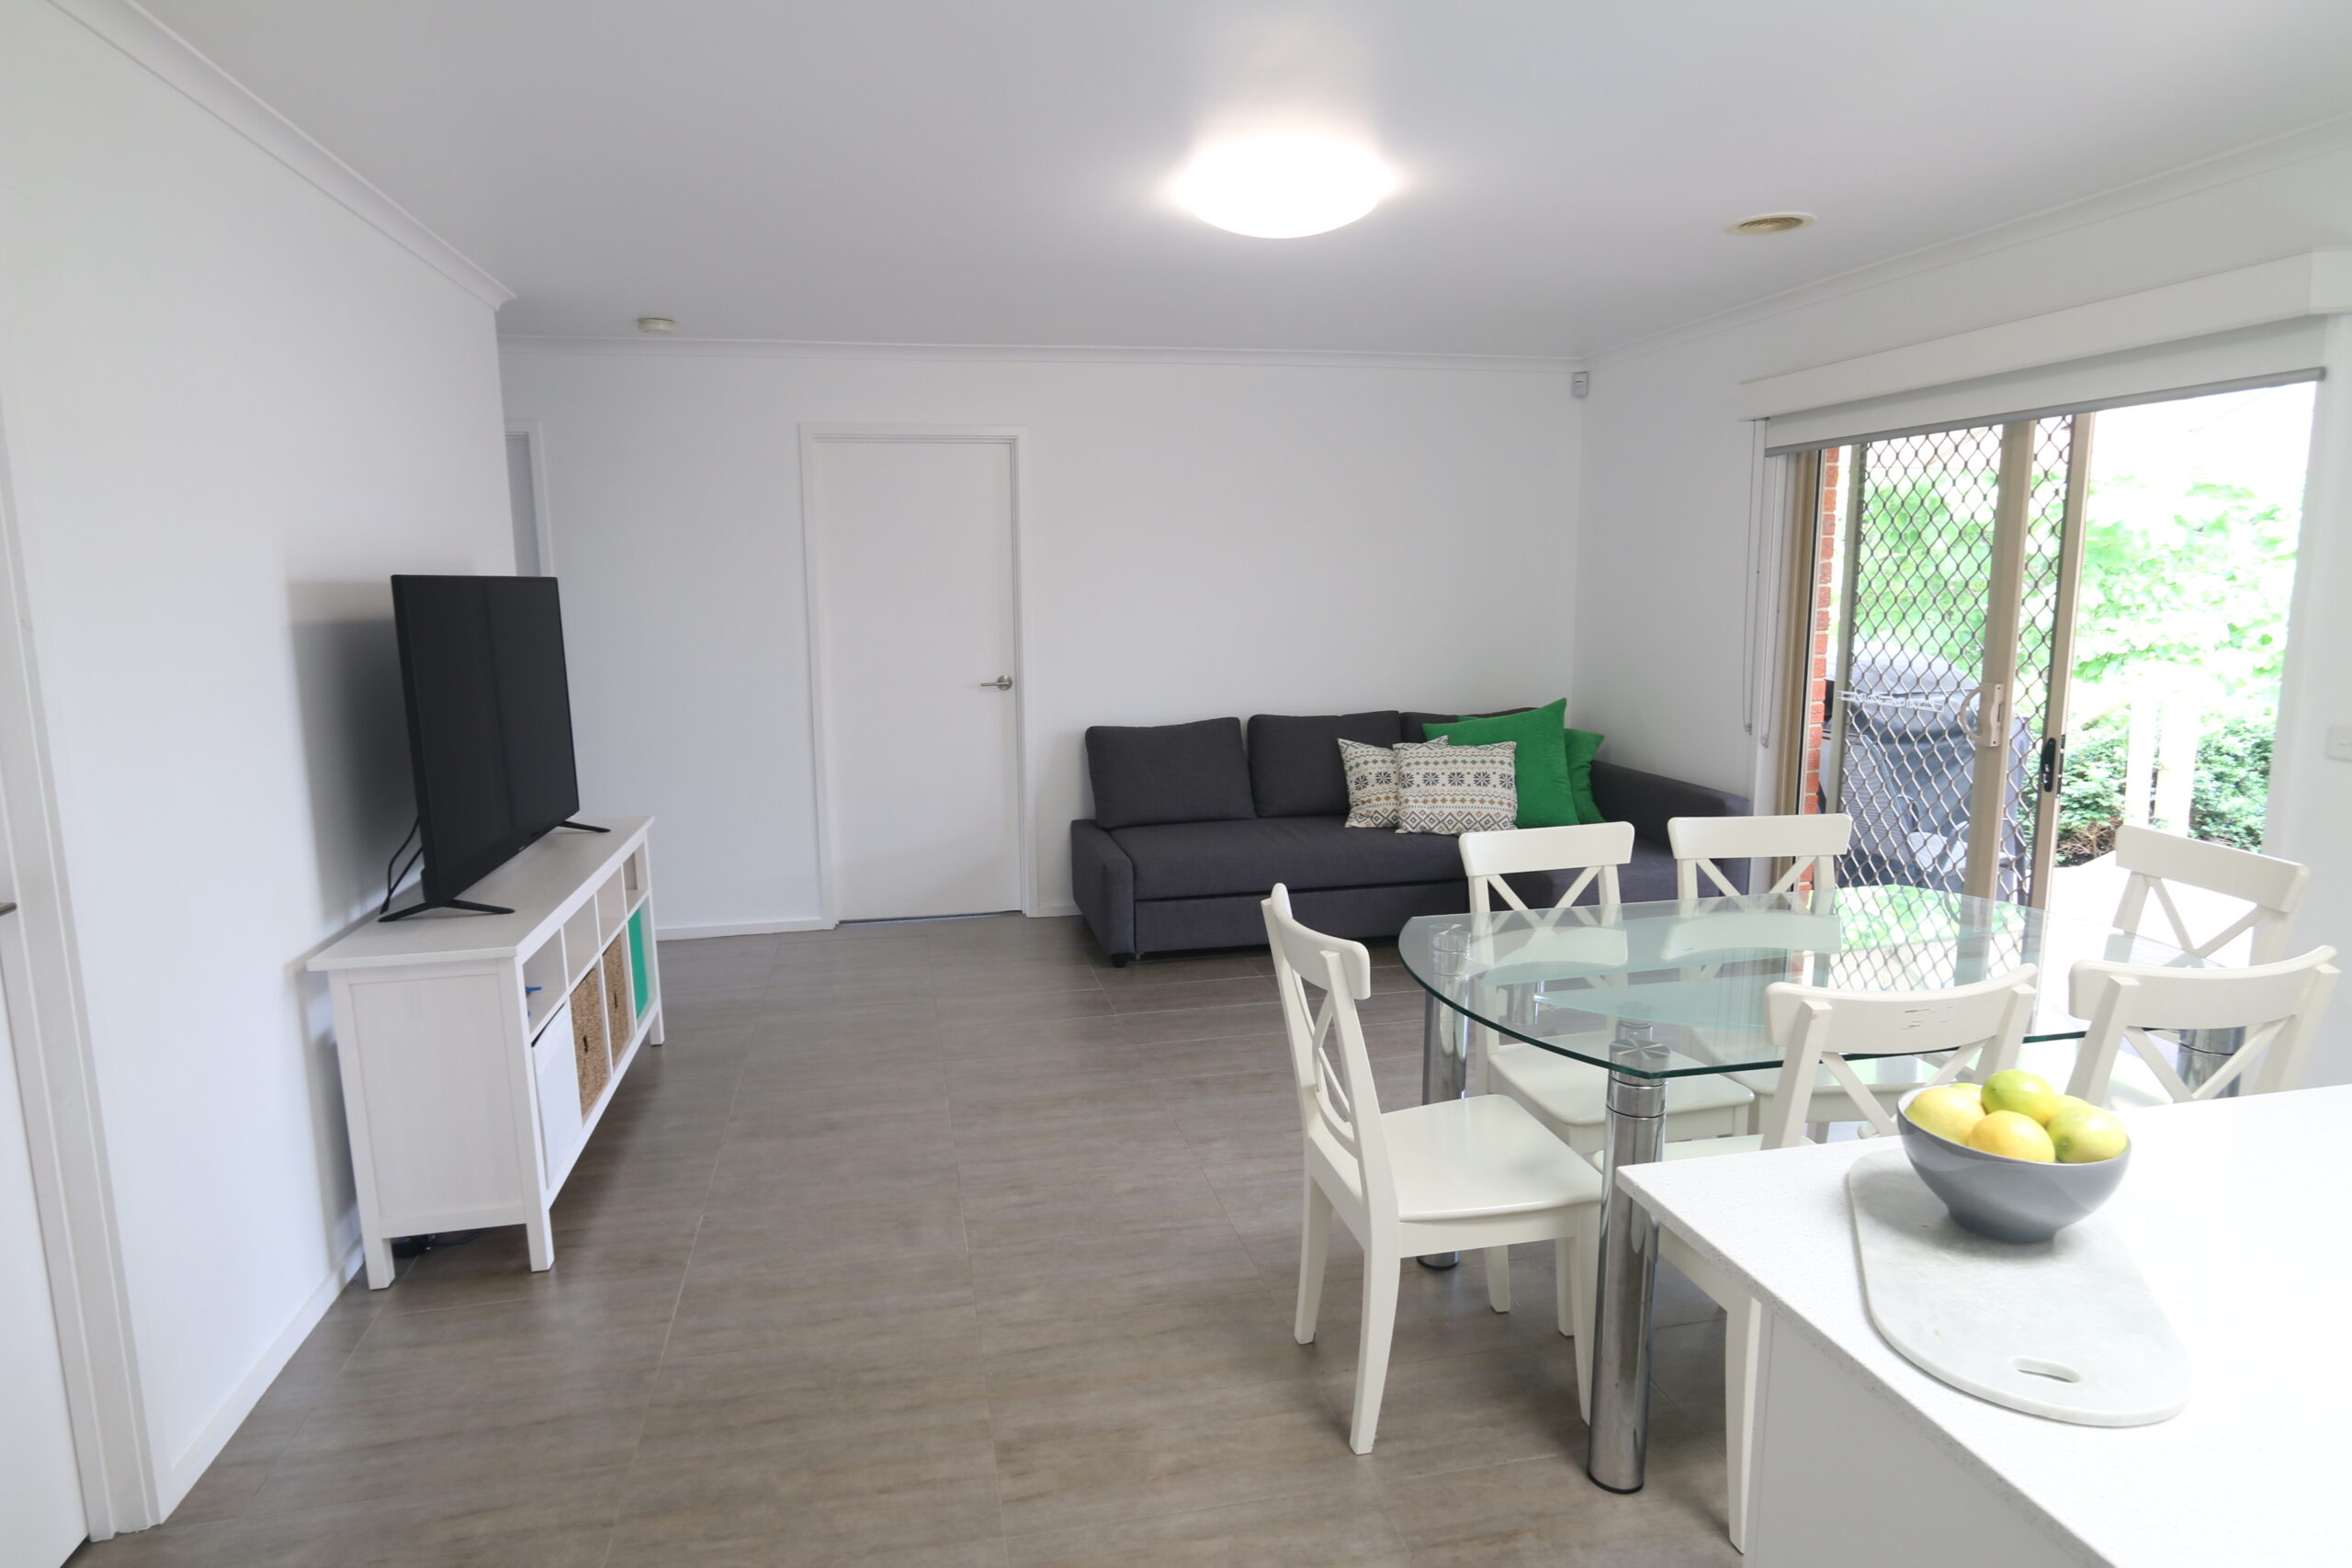 kitchen meals and living zone. Safety Beach holiday rental.